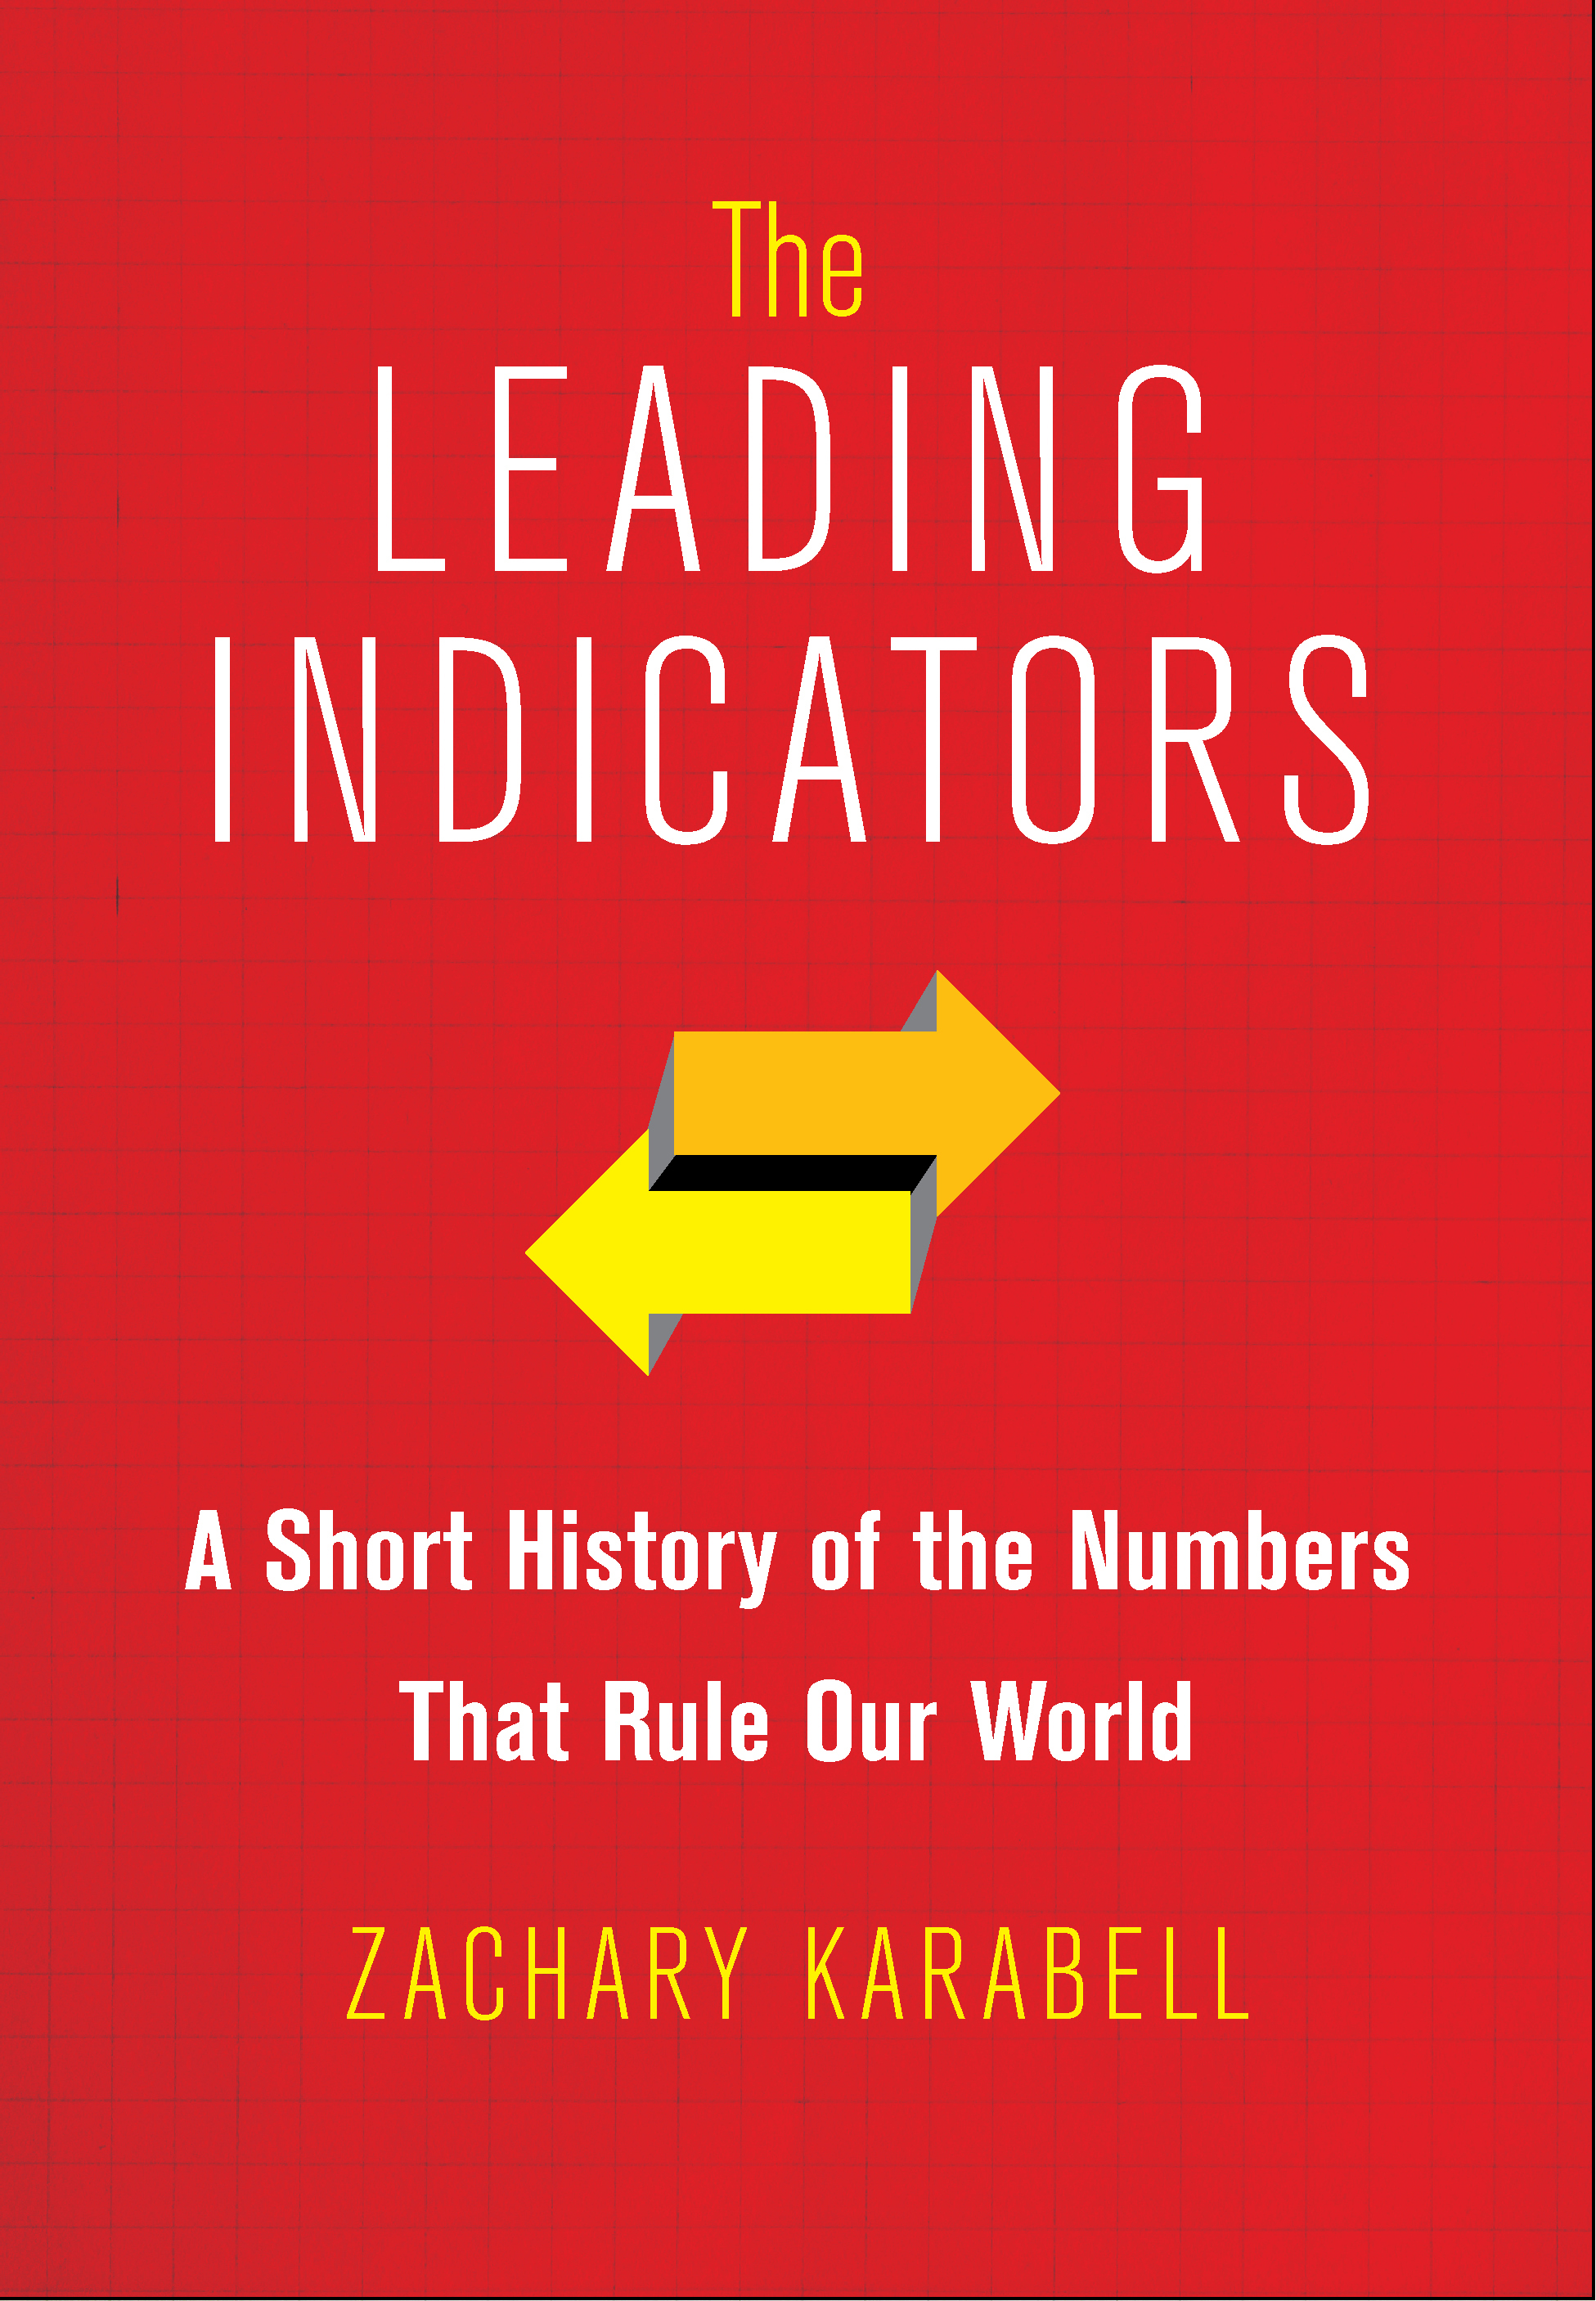 Leading-indicators-9781451651201_hr